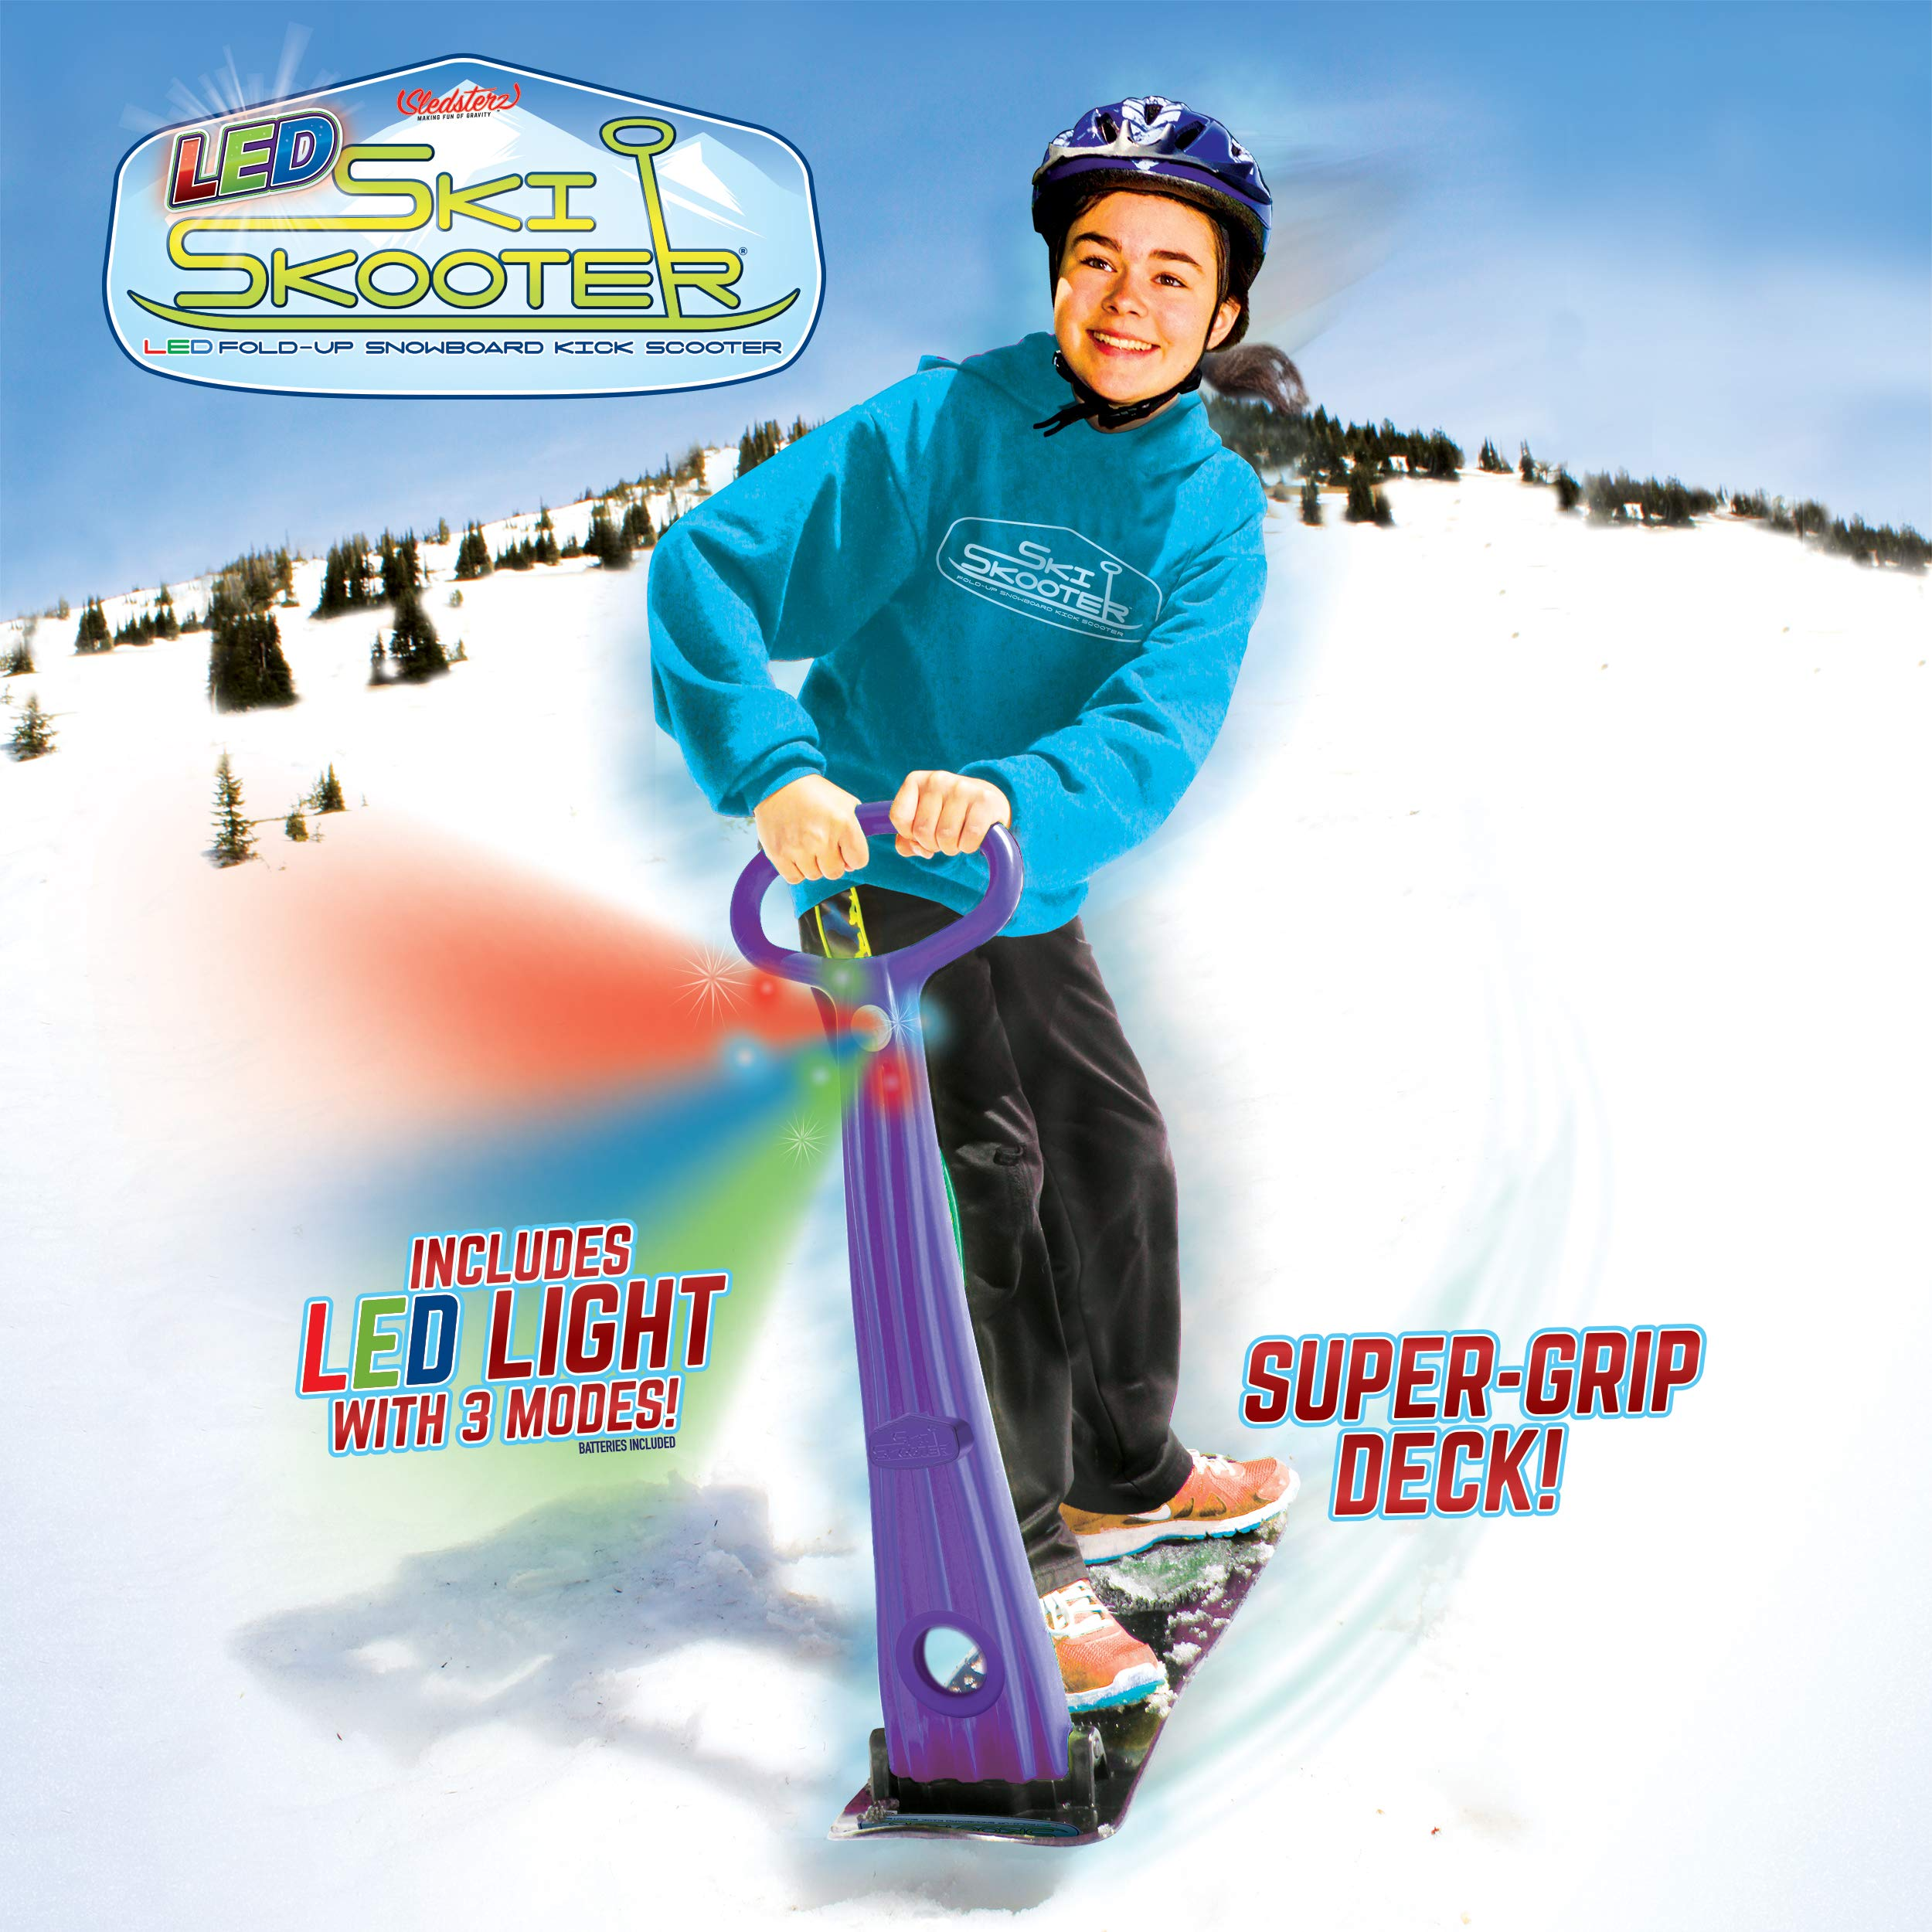 GeoSpace Original LED Ski Skooter: Fold-up Snowboard Kick-Scooter for Use on Snow and Grass, Assorted Colors (Red, Green, or Blue) by Geospace